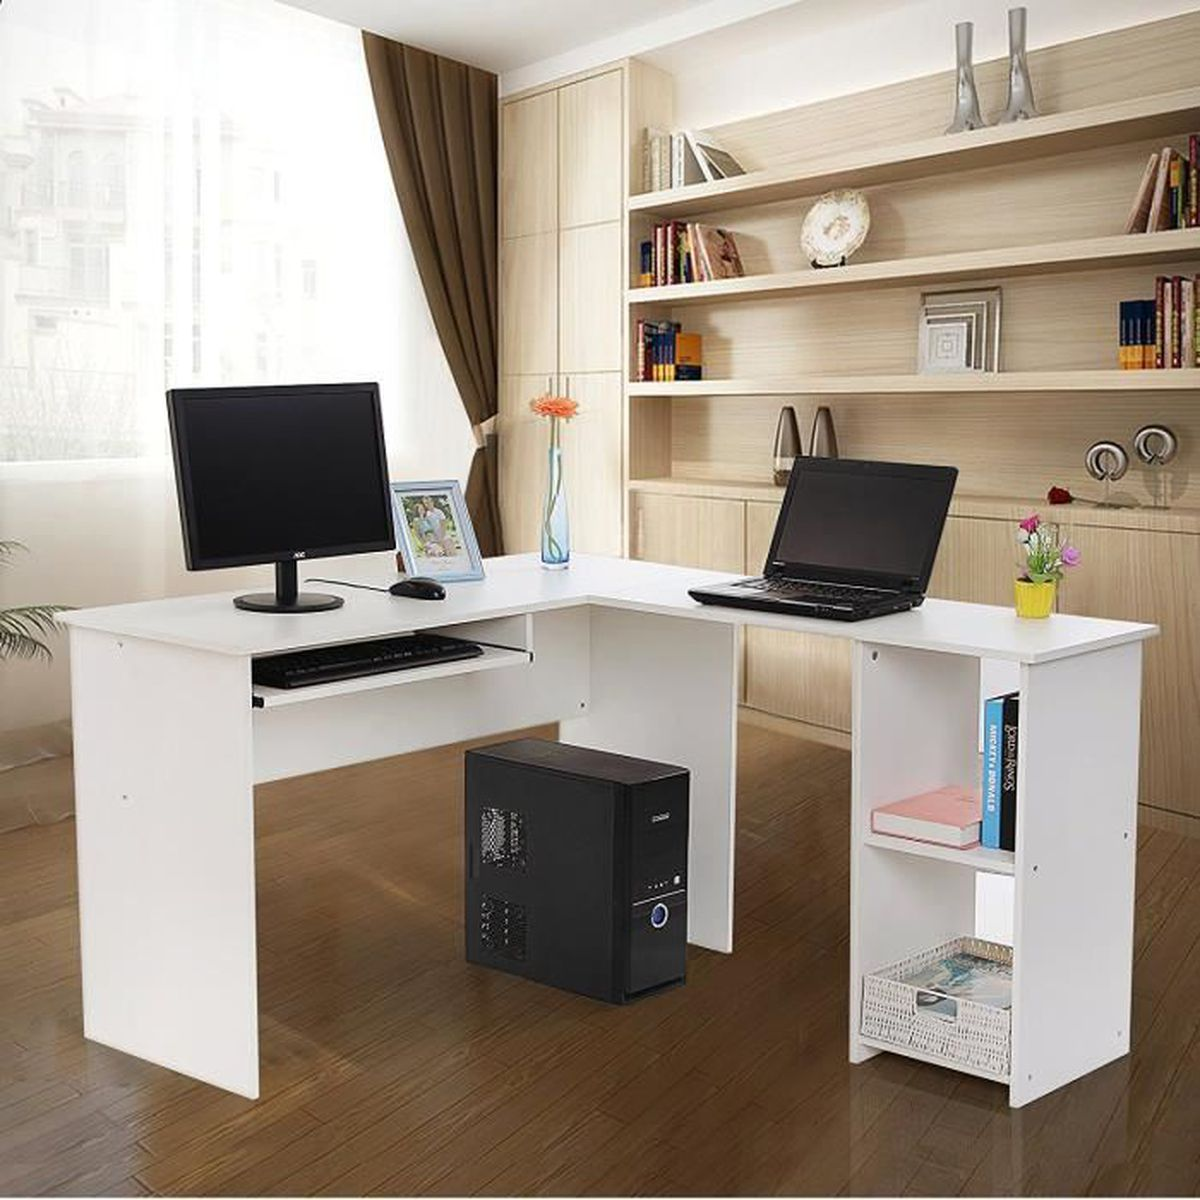 superbe bureau informatique blanc avec tablette coulissante pour clavier meuble de bureau pour. Black Bedroom Furniture Sets. Home Design Ideas